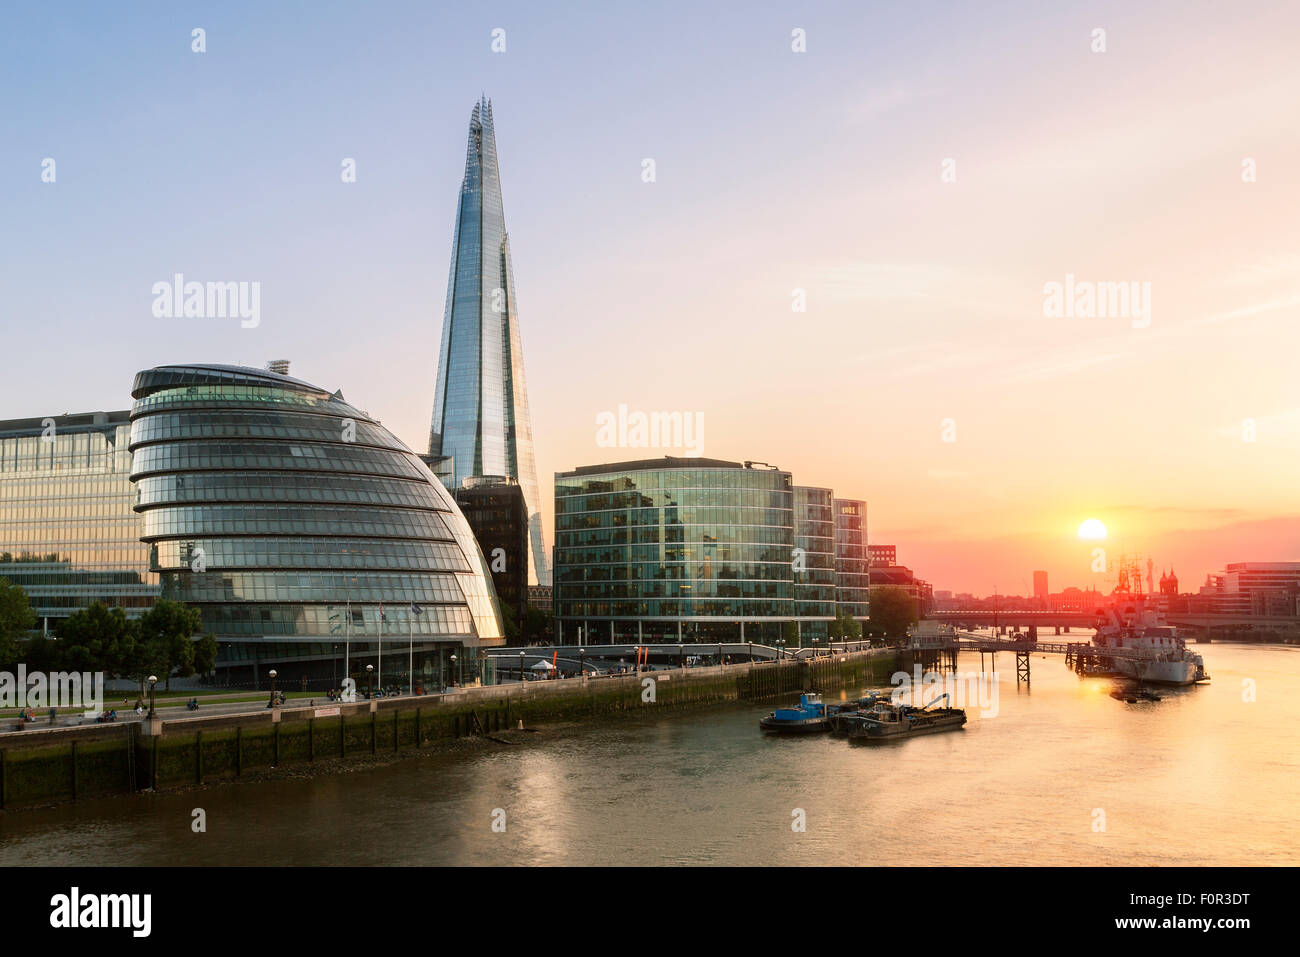 Londres, Shard London Bridge y el City Hall de Londres al atardecer Imagen De Stock